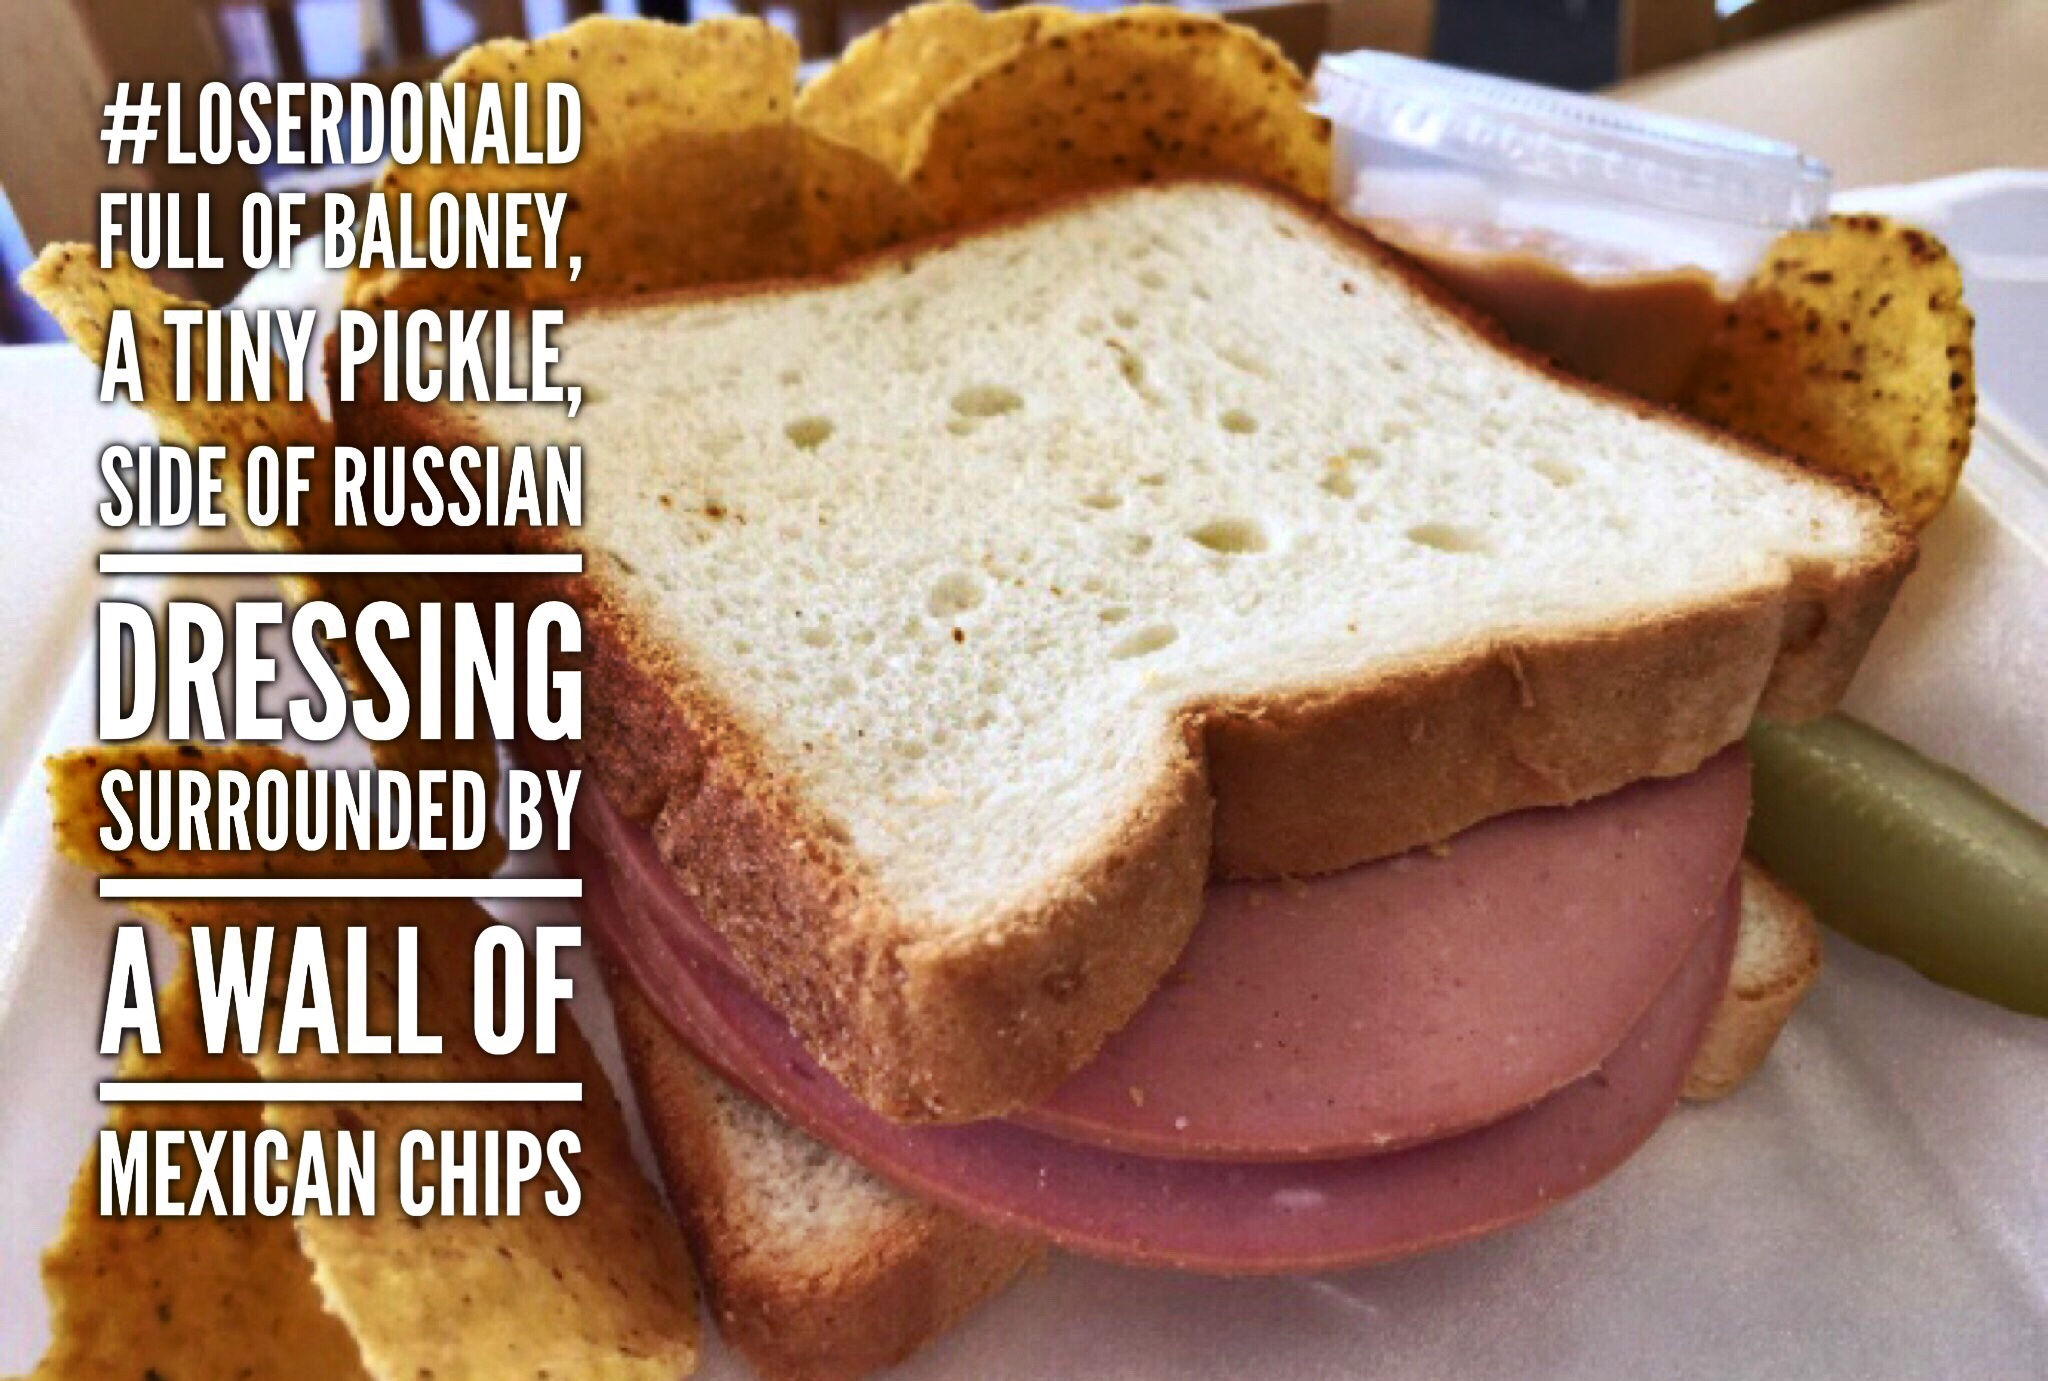 The Donald Sandwich : Full of baloney, a tiny pickle, side of Russian dressing, and surrounded by a wall of Mexican chips. # LoserDonald